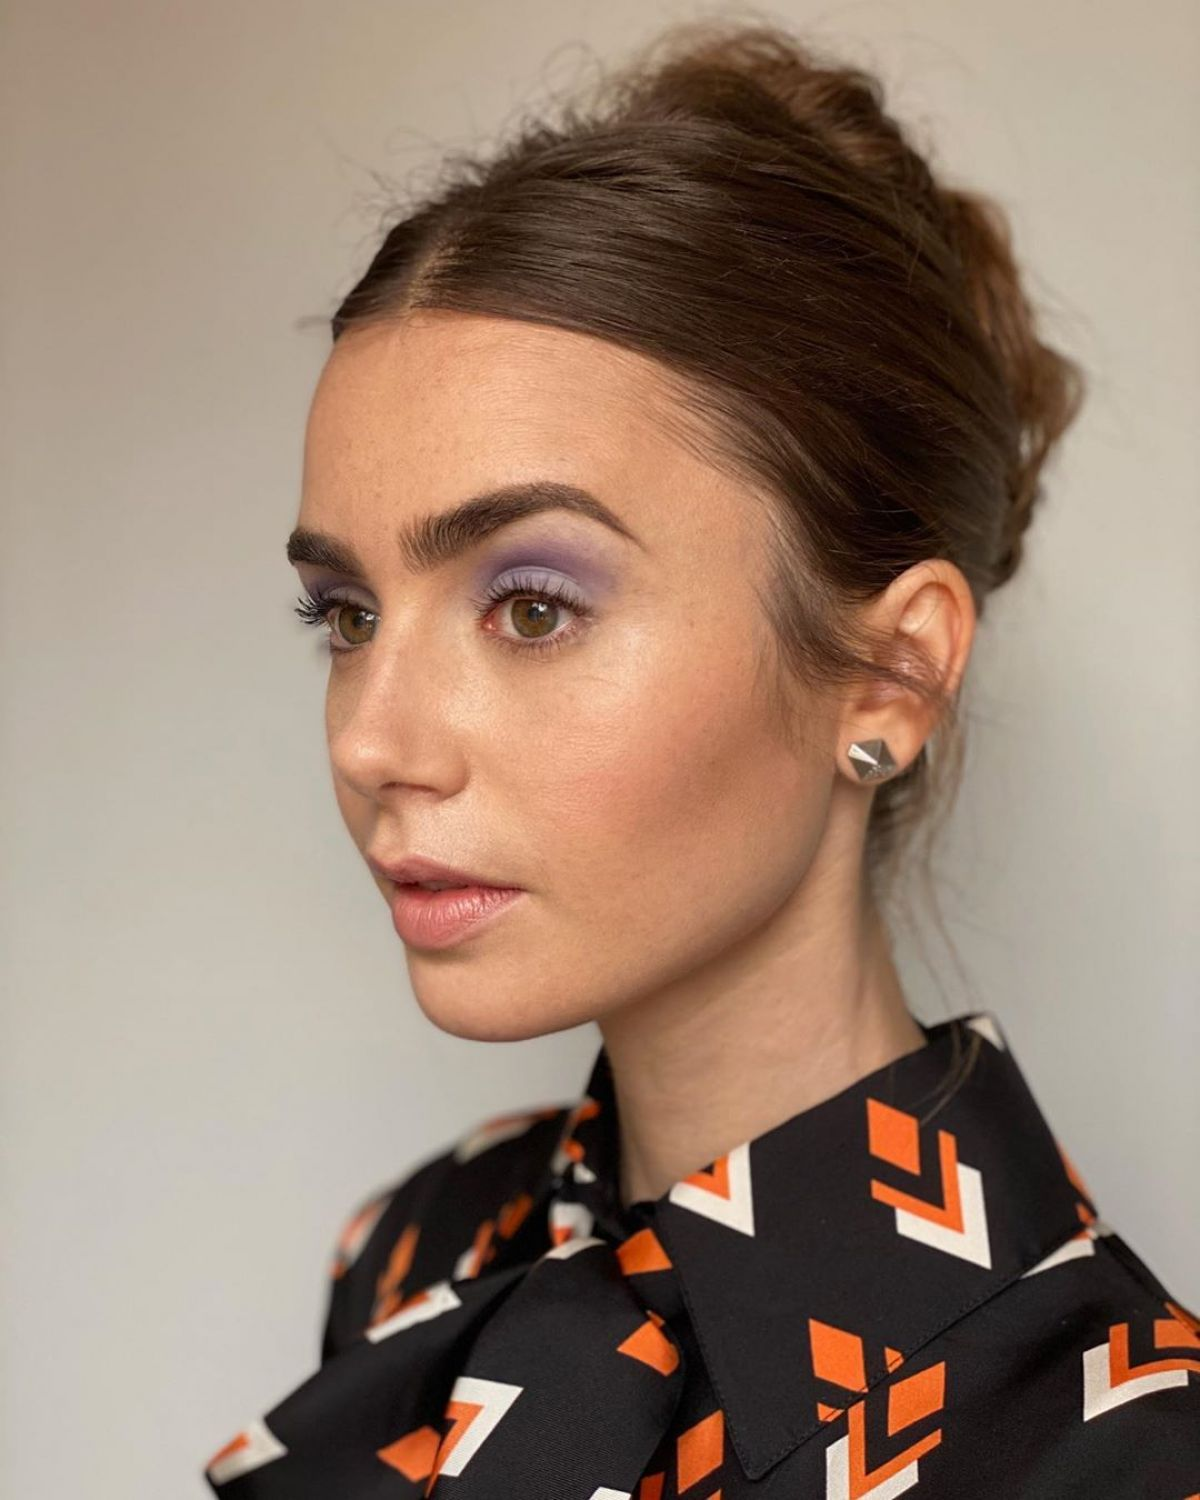 Lily Collins Emily In Paris Promos 2020 In 2020 Lily Collins Hair Lily Collins Makeup Lily Collins